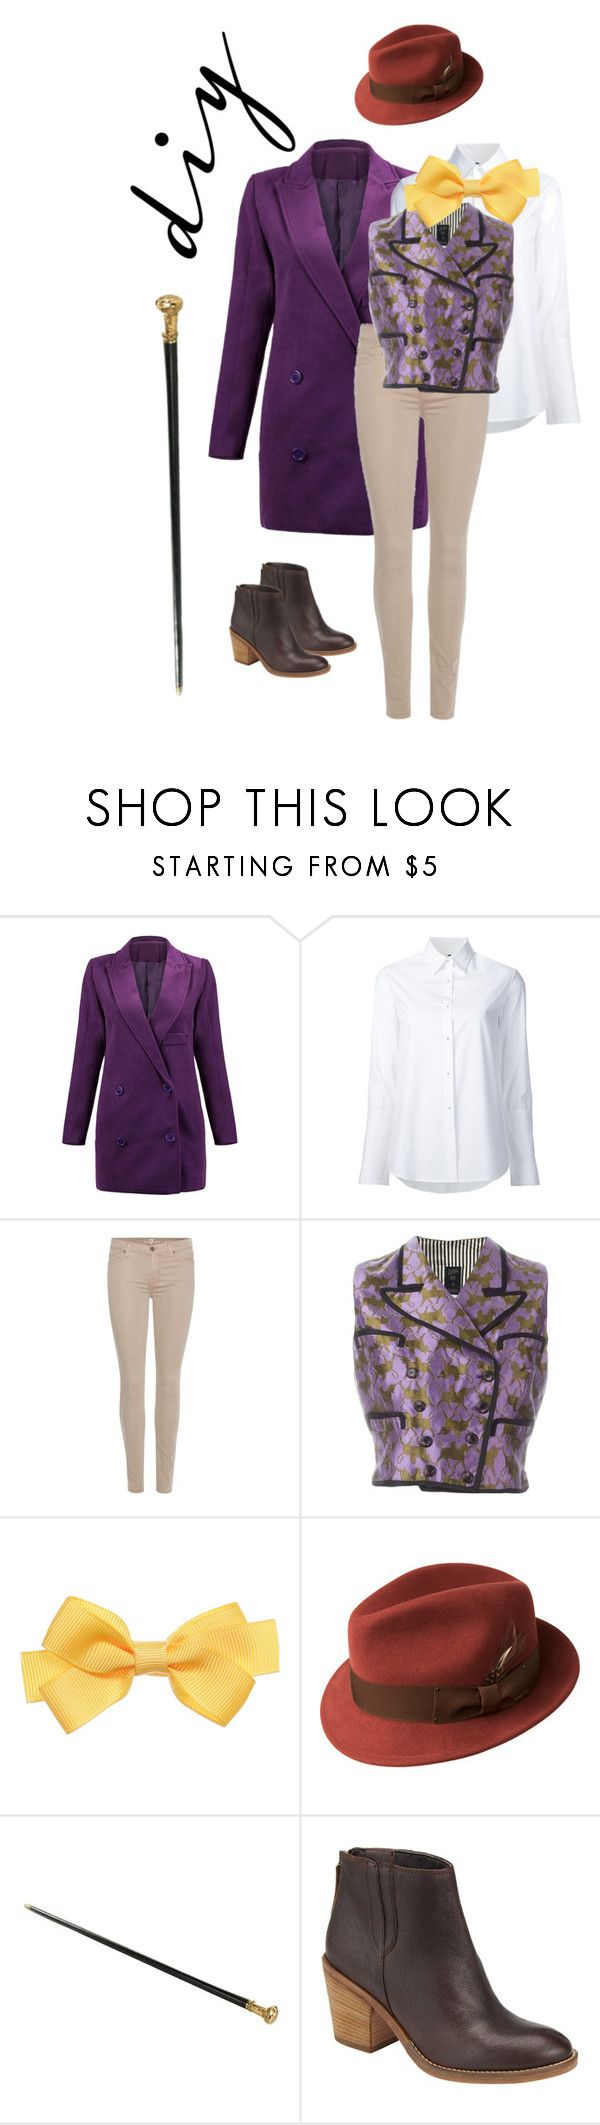 """Costume: Movie: Willy Wonka"" by rebeccalange ❤ liked on Polyvore featuring Misha Nonoo, 7 For All Mankind, Jean-Paul Gaultier, Bailey of Hollywood, John Lewis, halloweencostume and DIYHalloween"